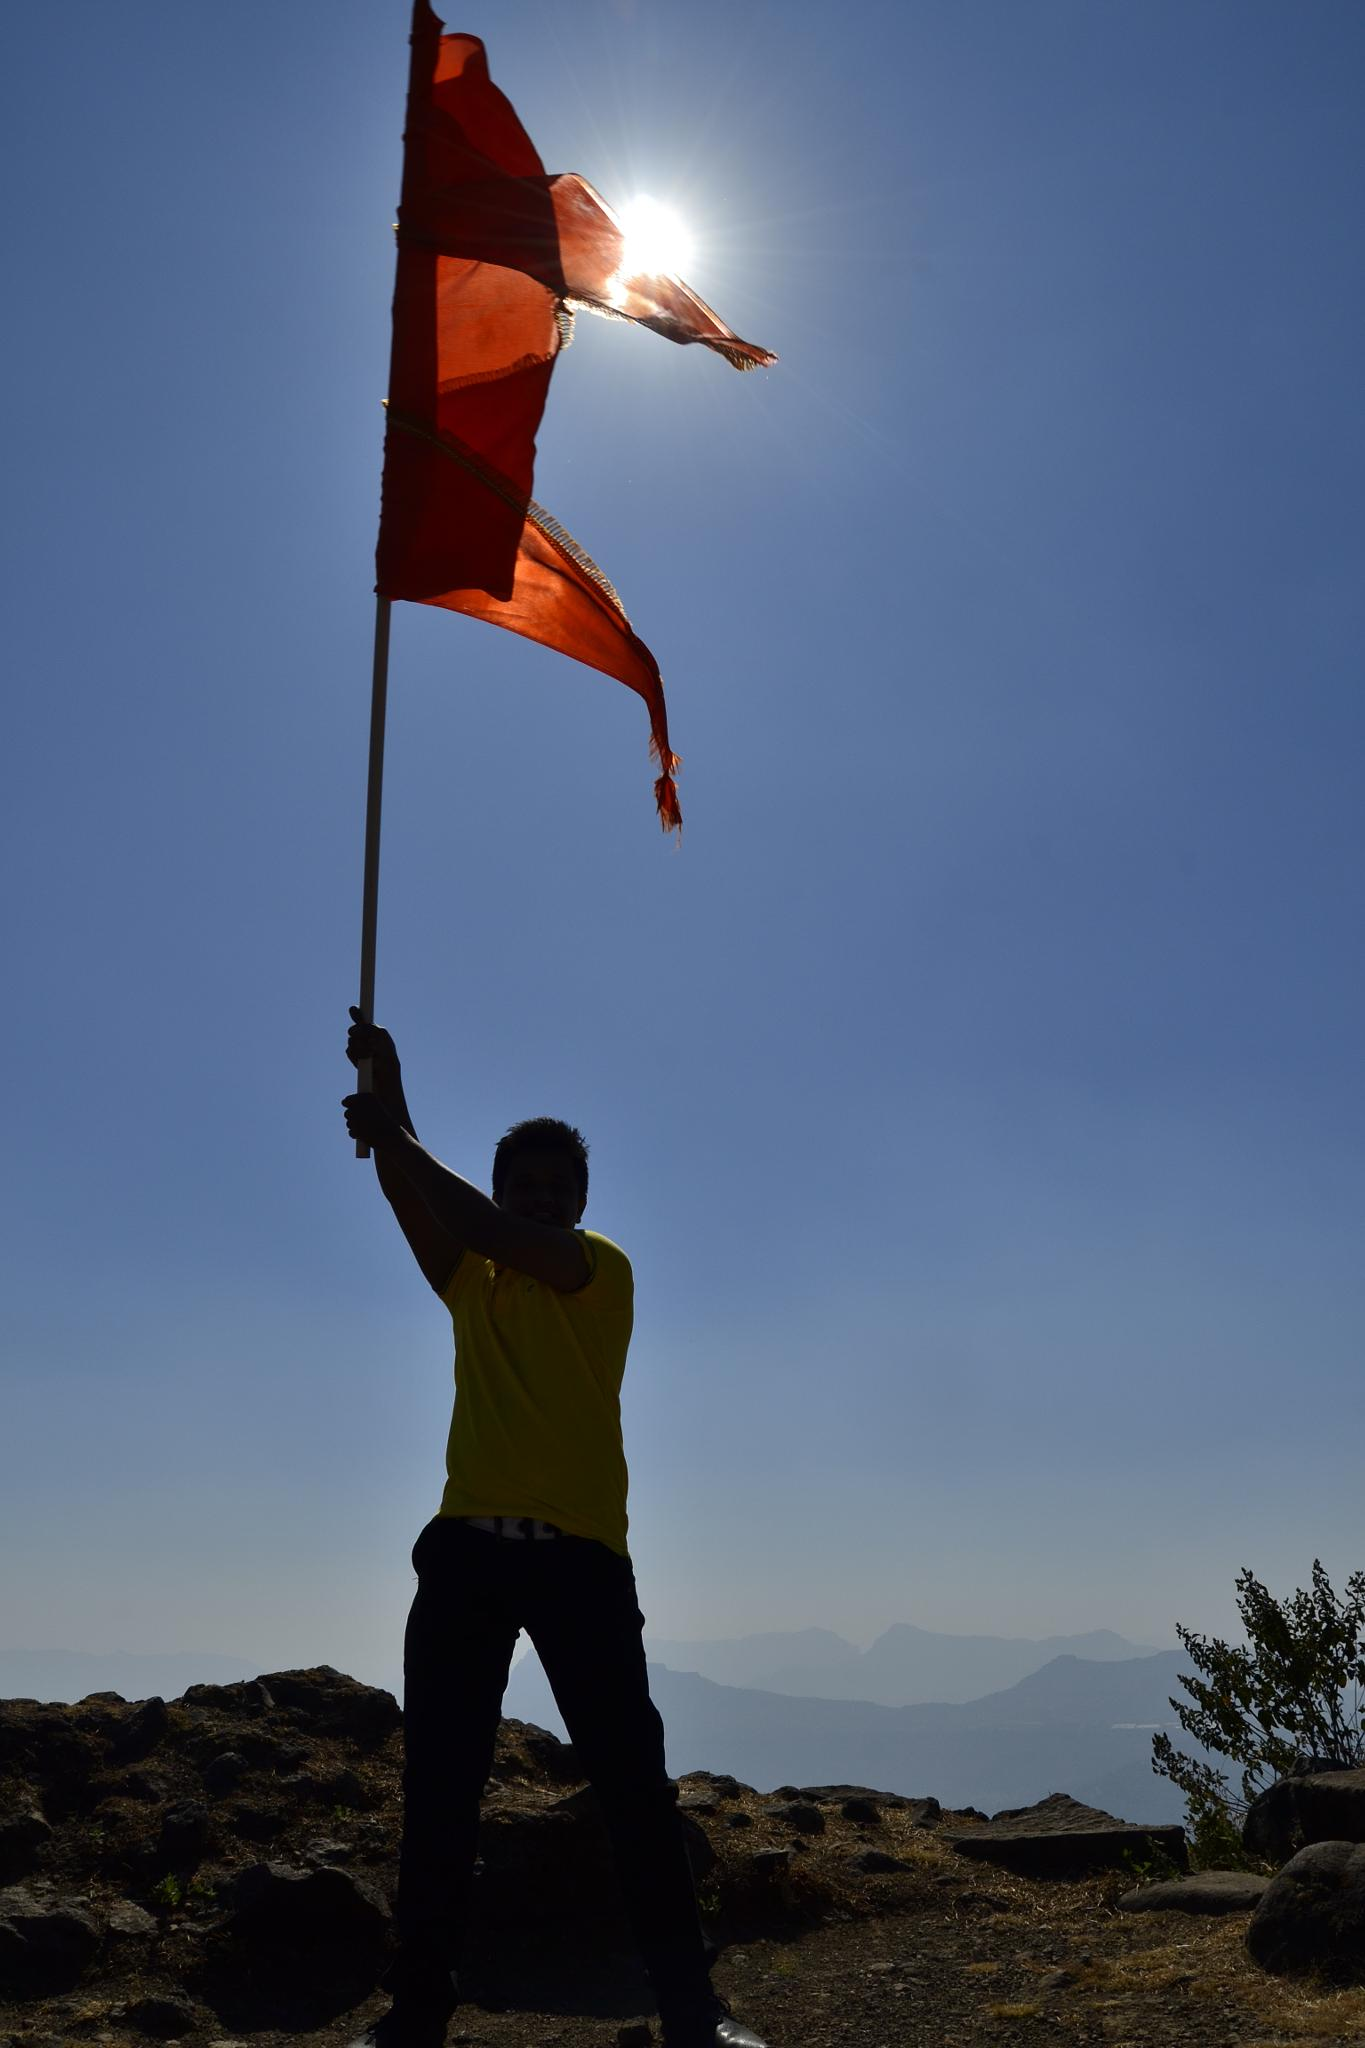 The  Moment Of Success  by PRasad Ahirrao